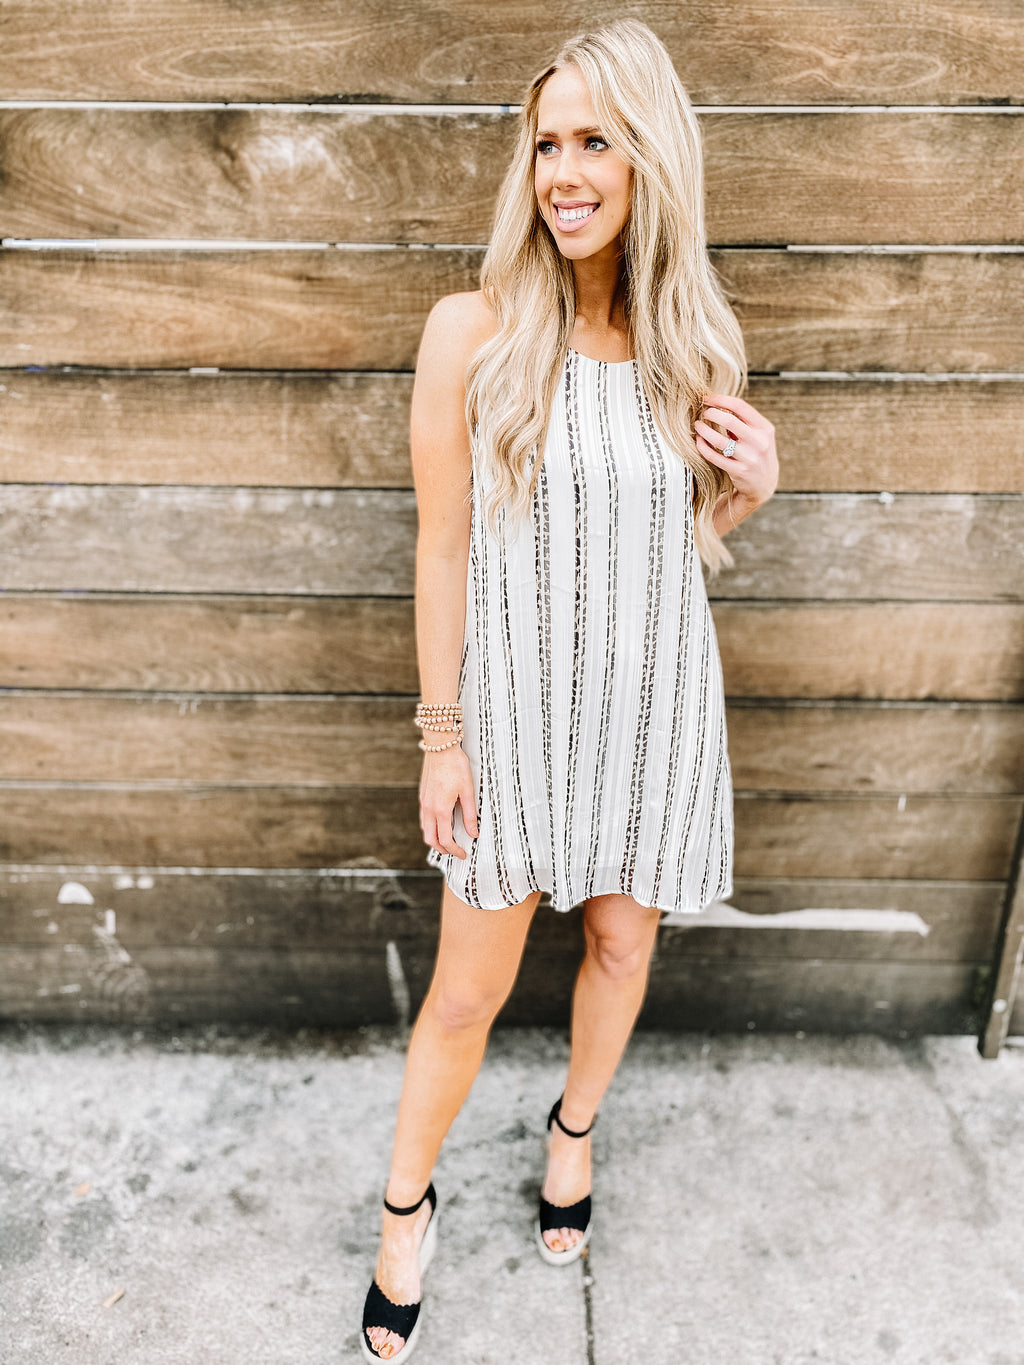 CHEETAH STRIPED DRESS